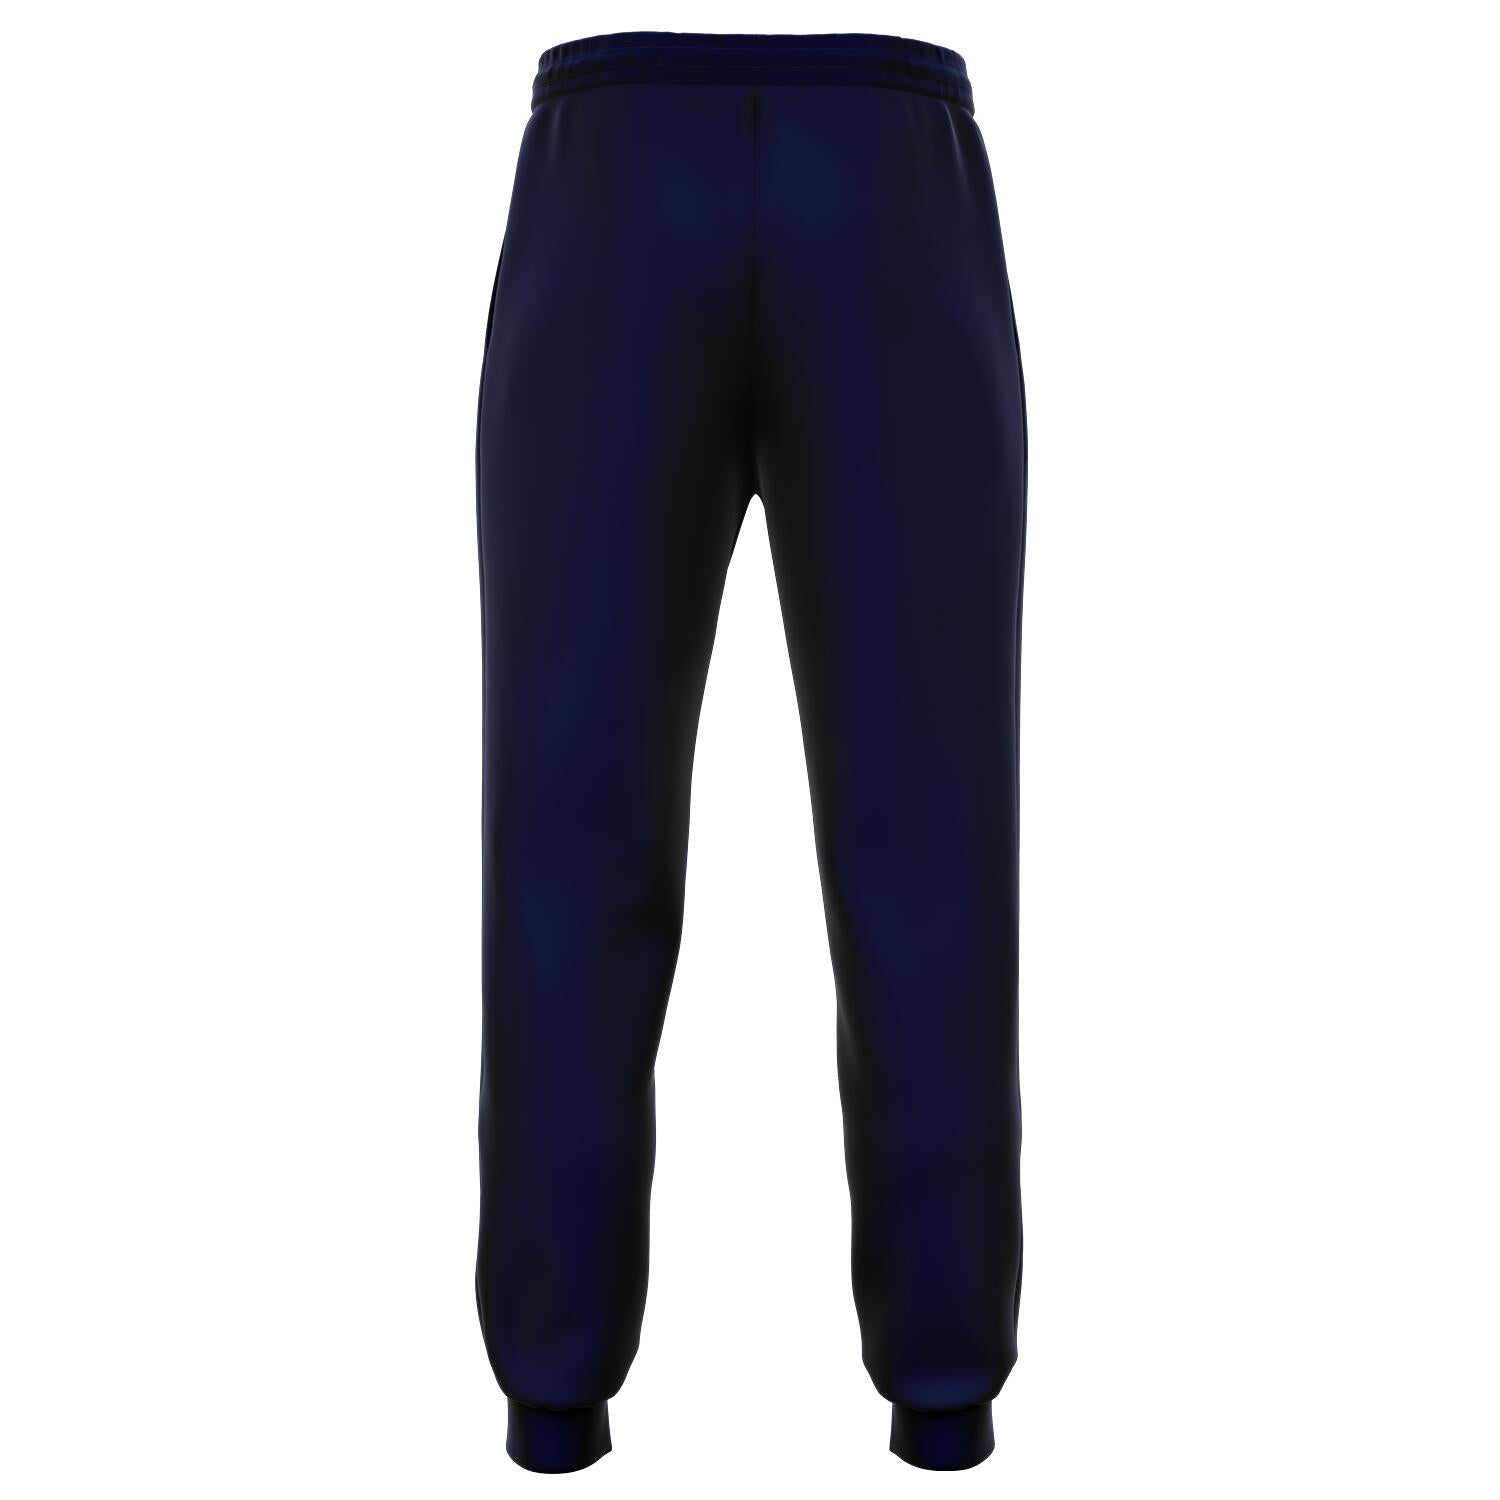 Navy Blue Athletic Joggers